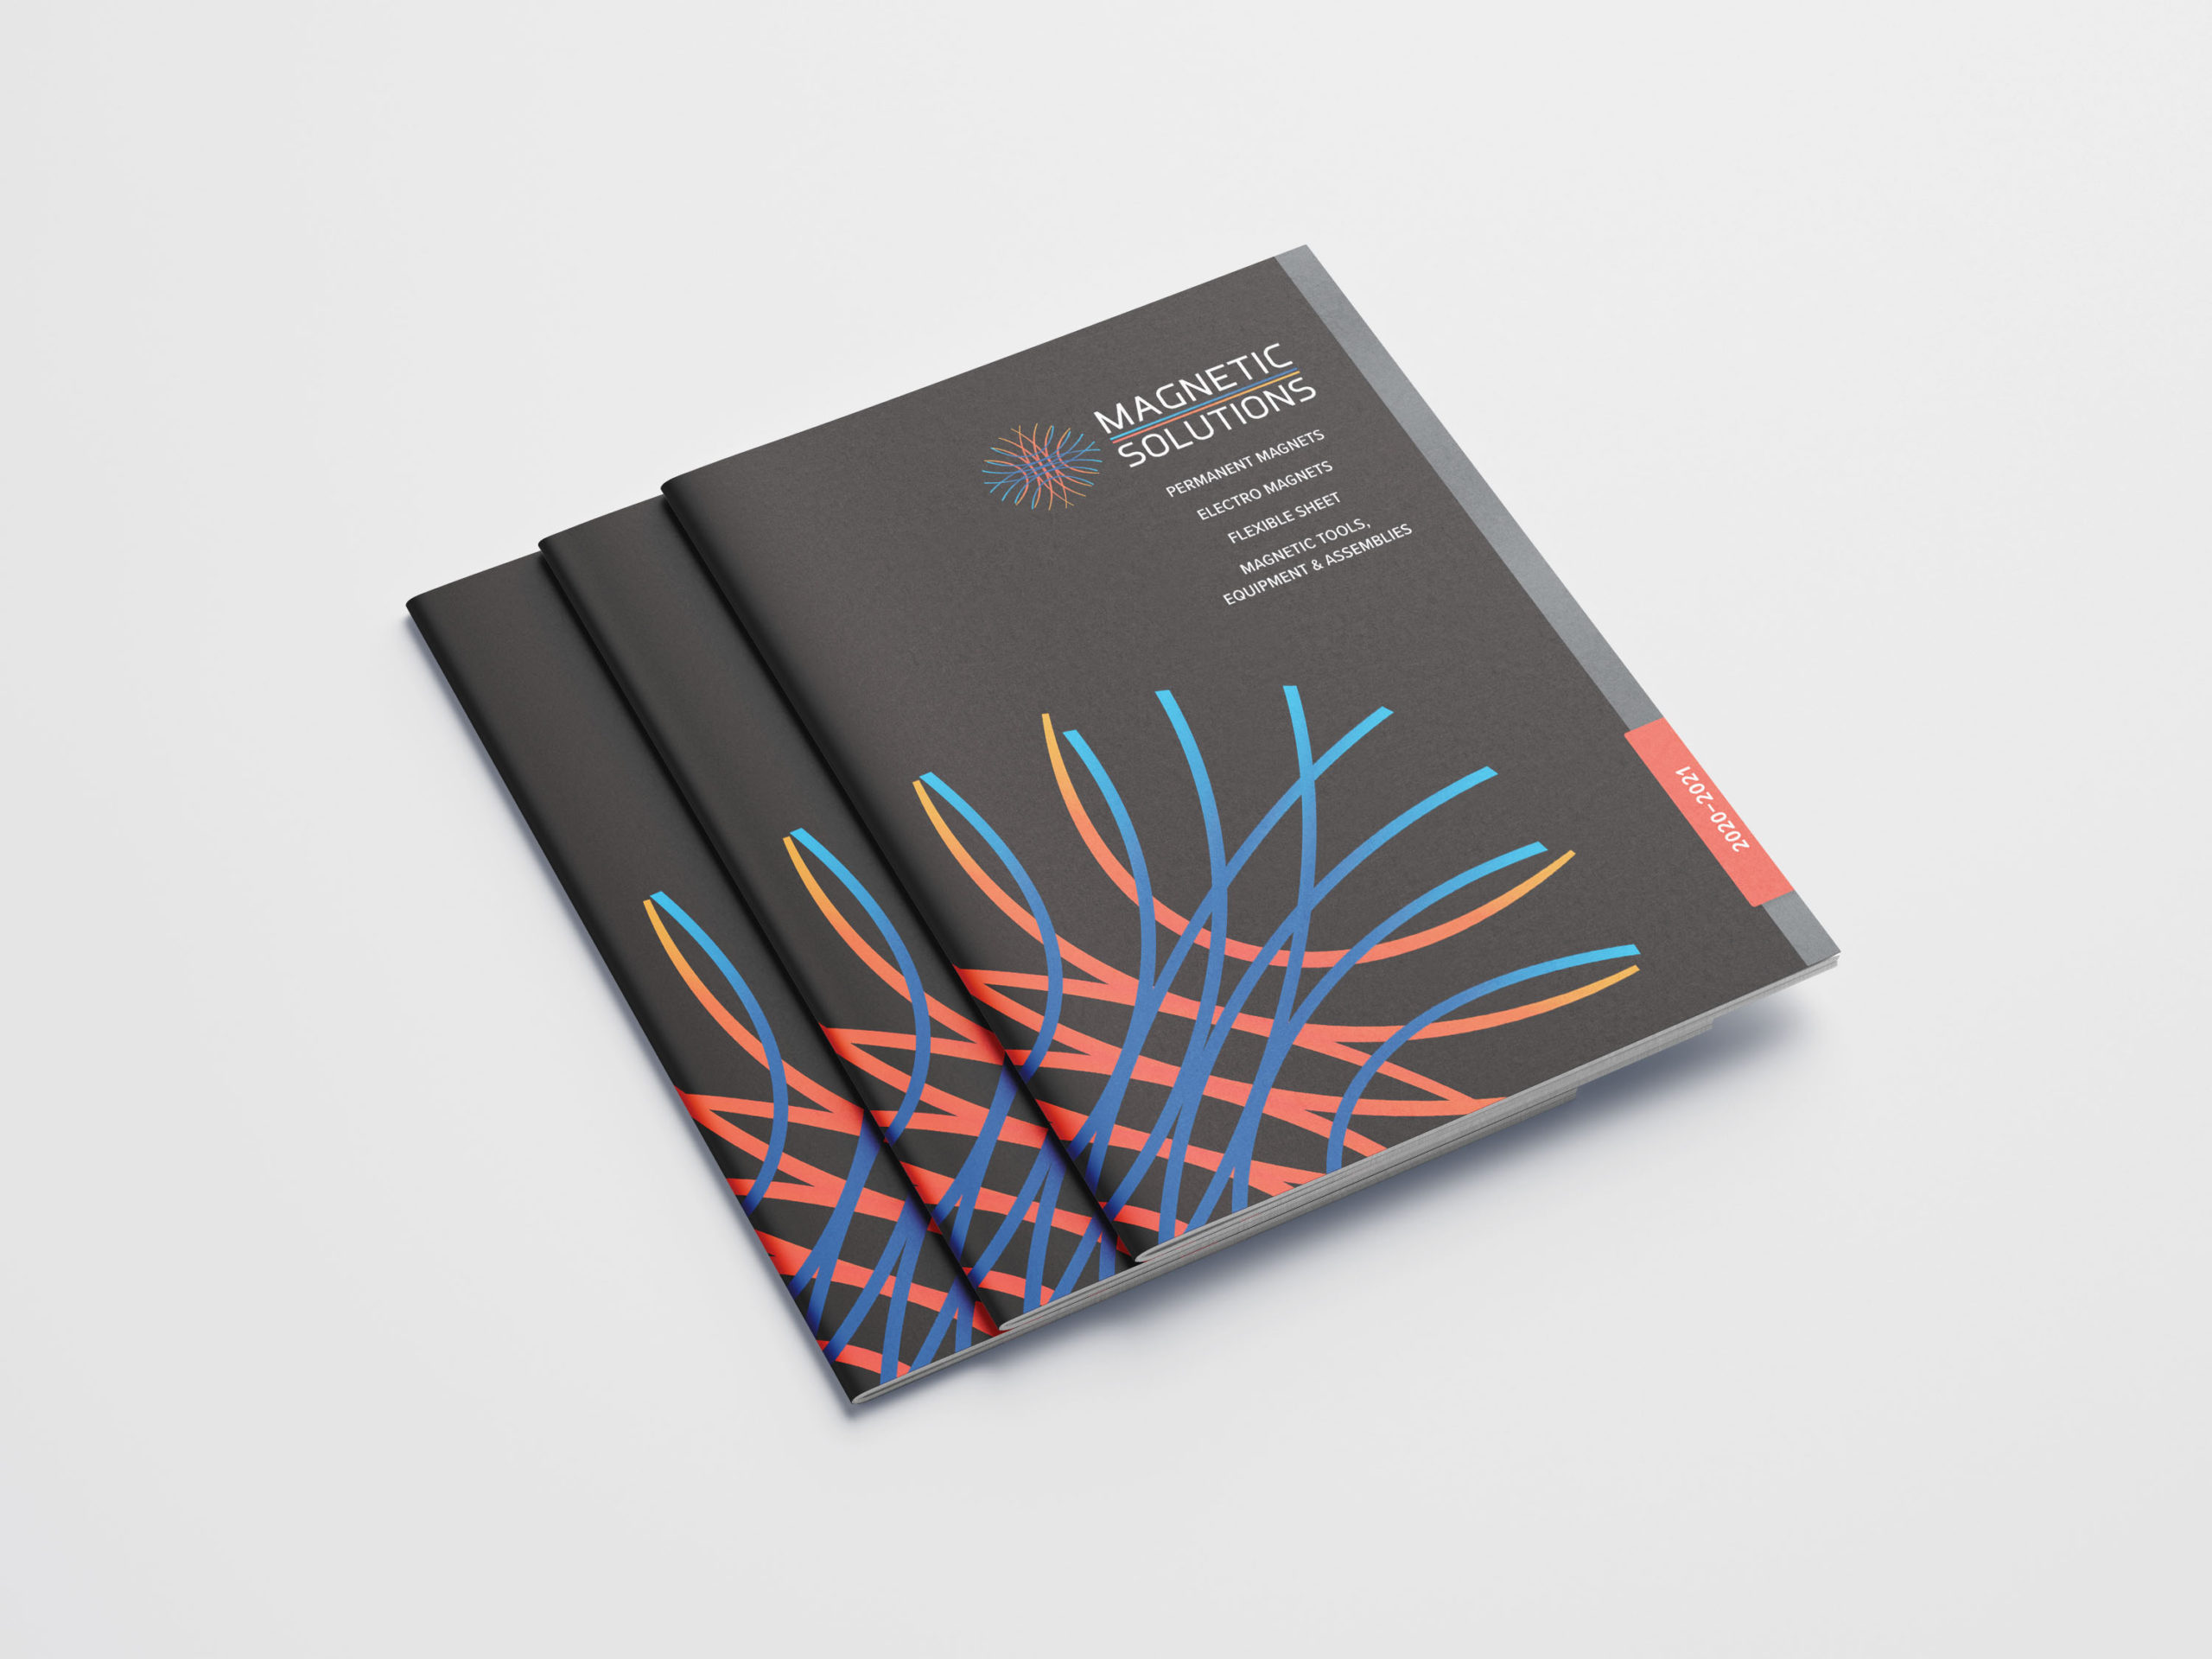 Magnet catalogue cover with bright logo on black background